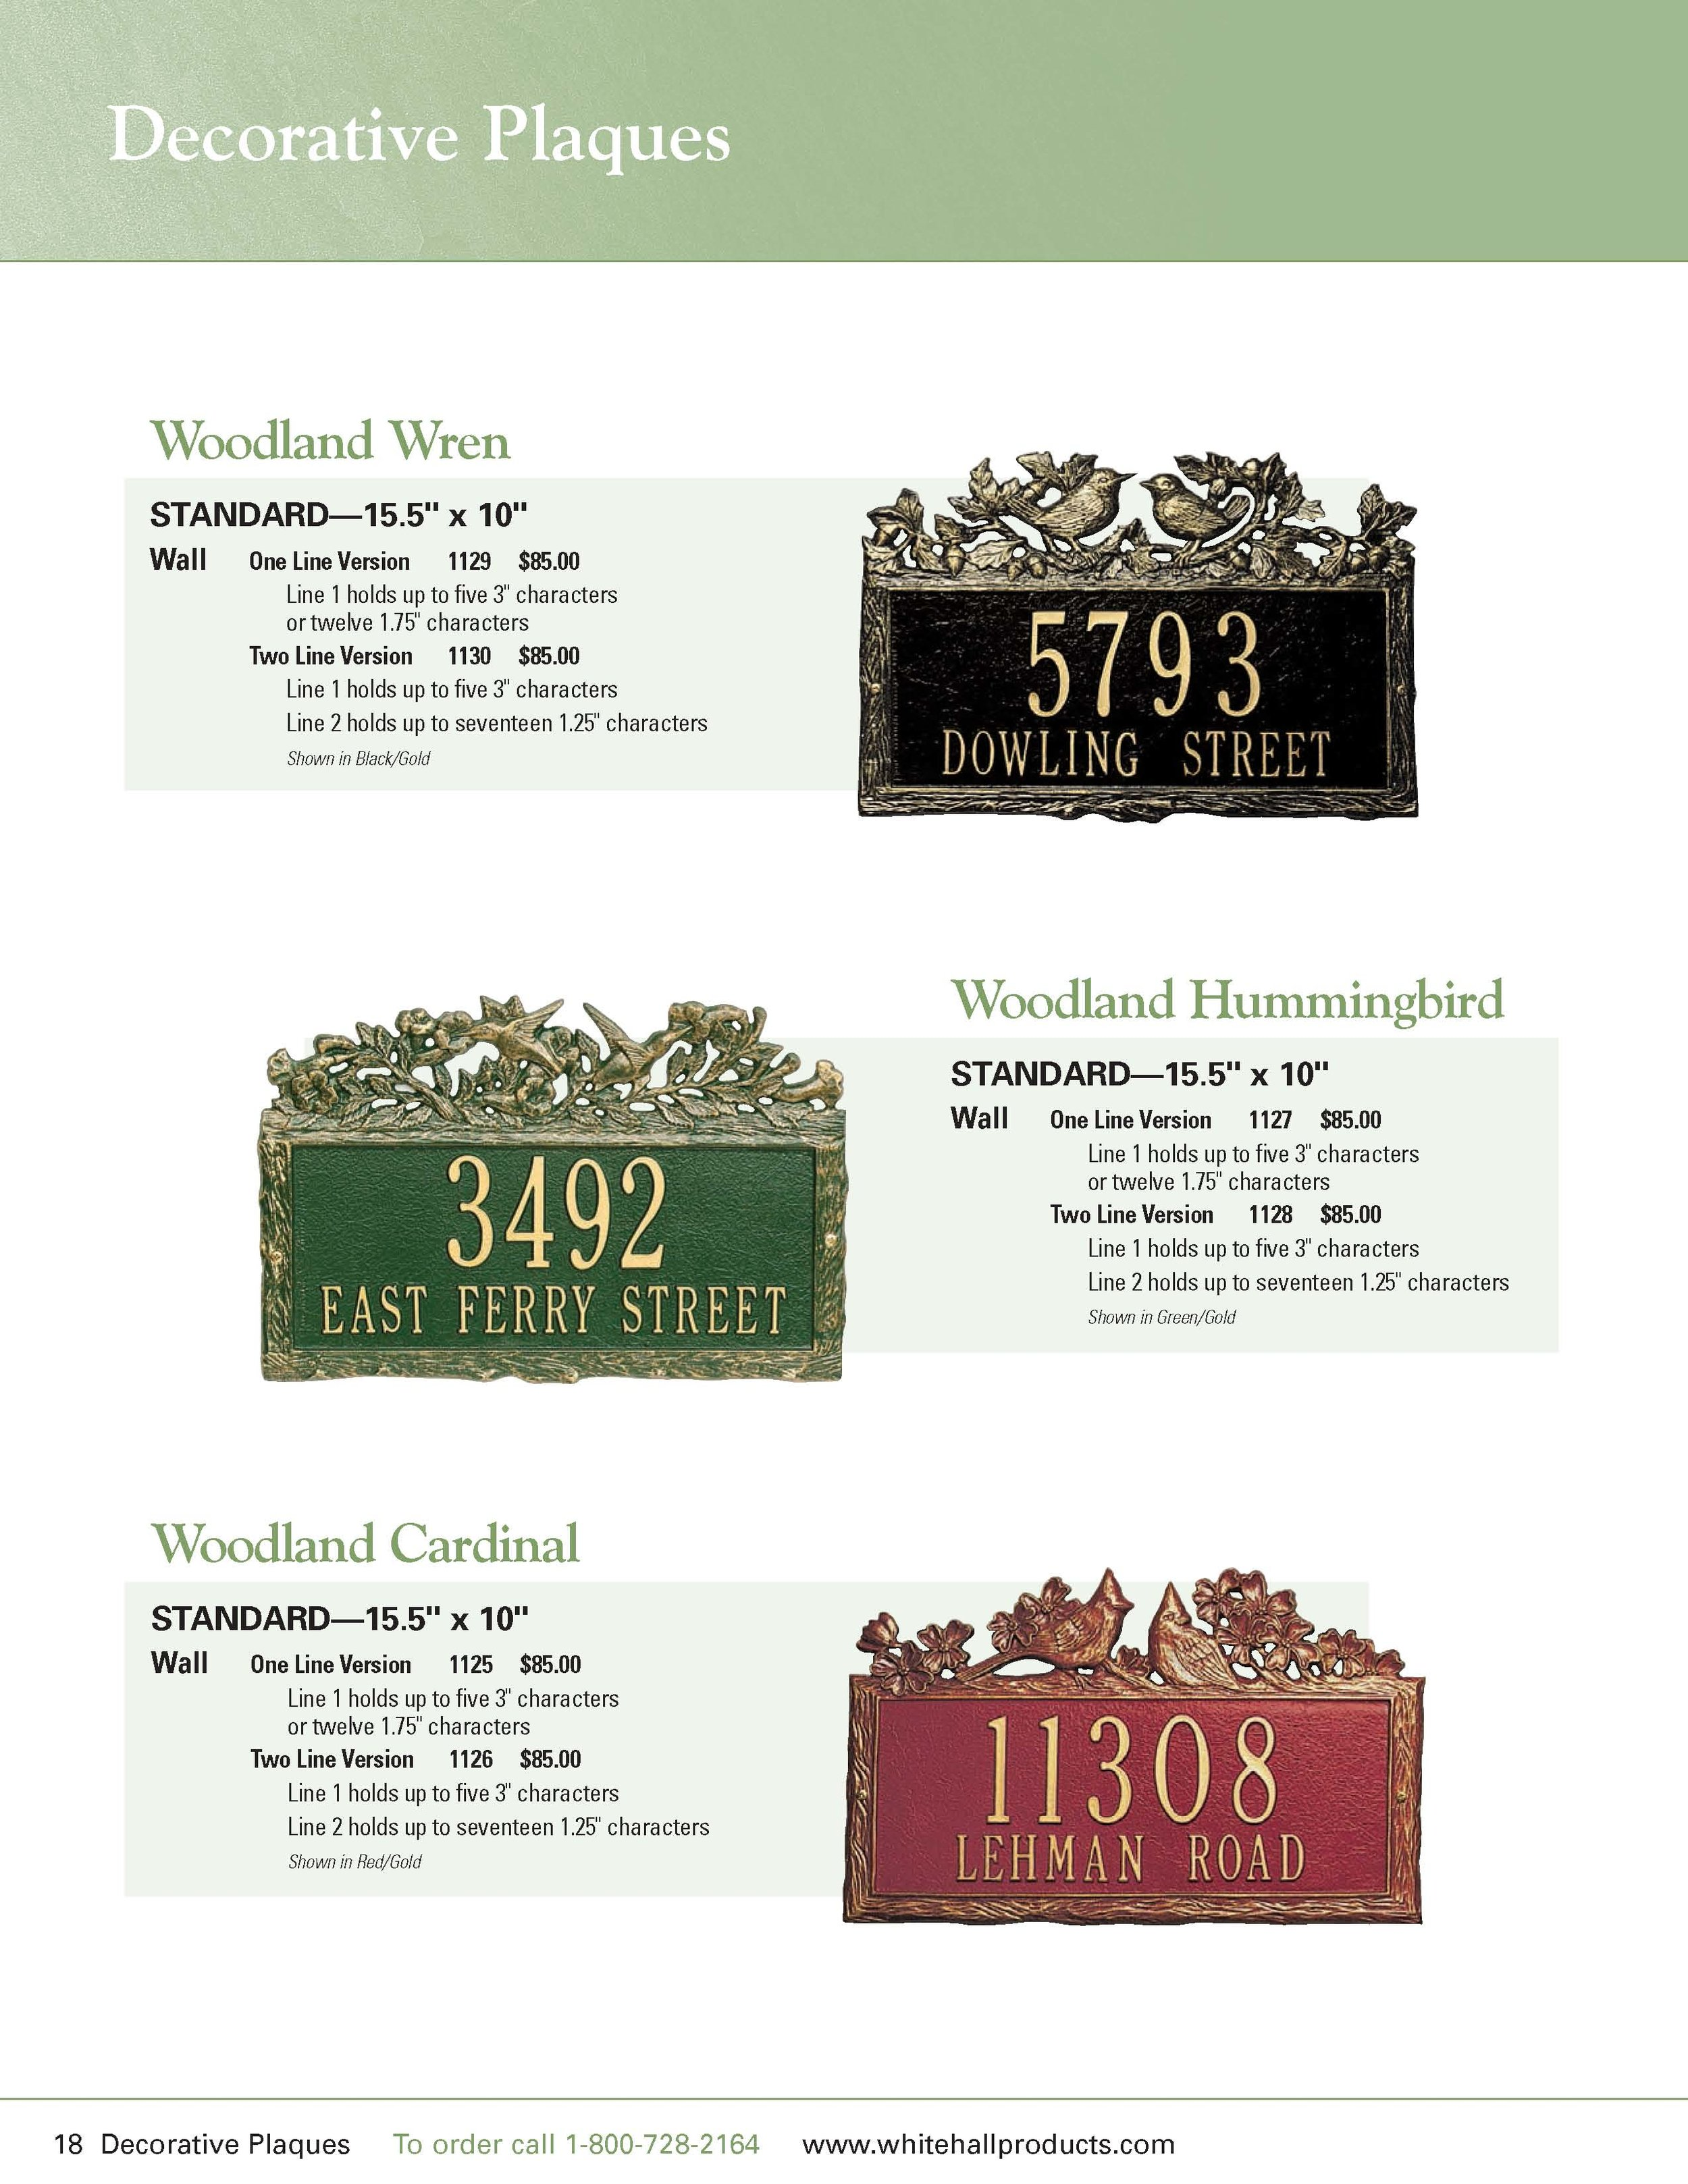 whitehall_catalog_pers_Page_18.jpg